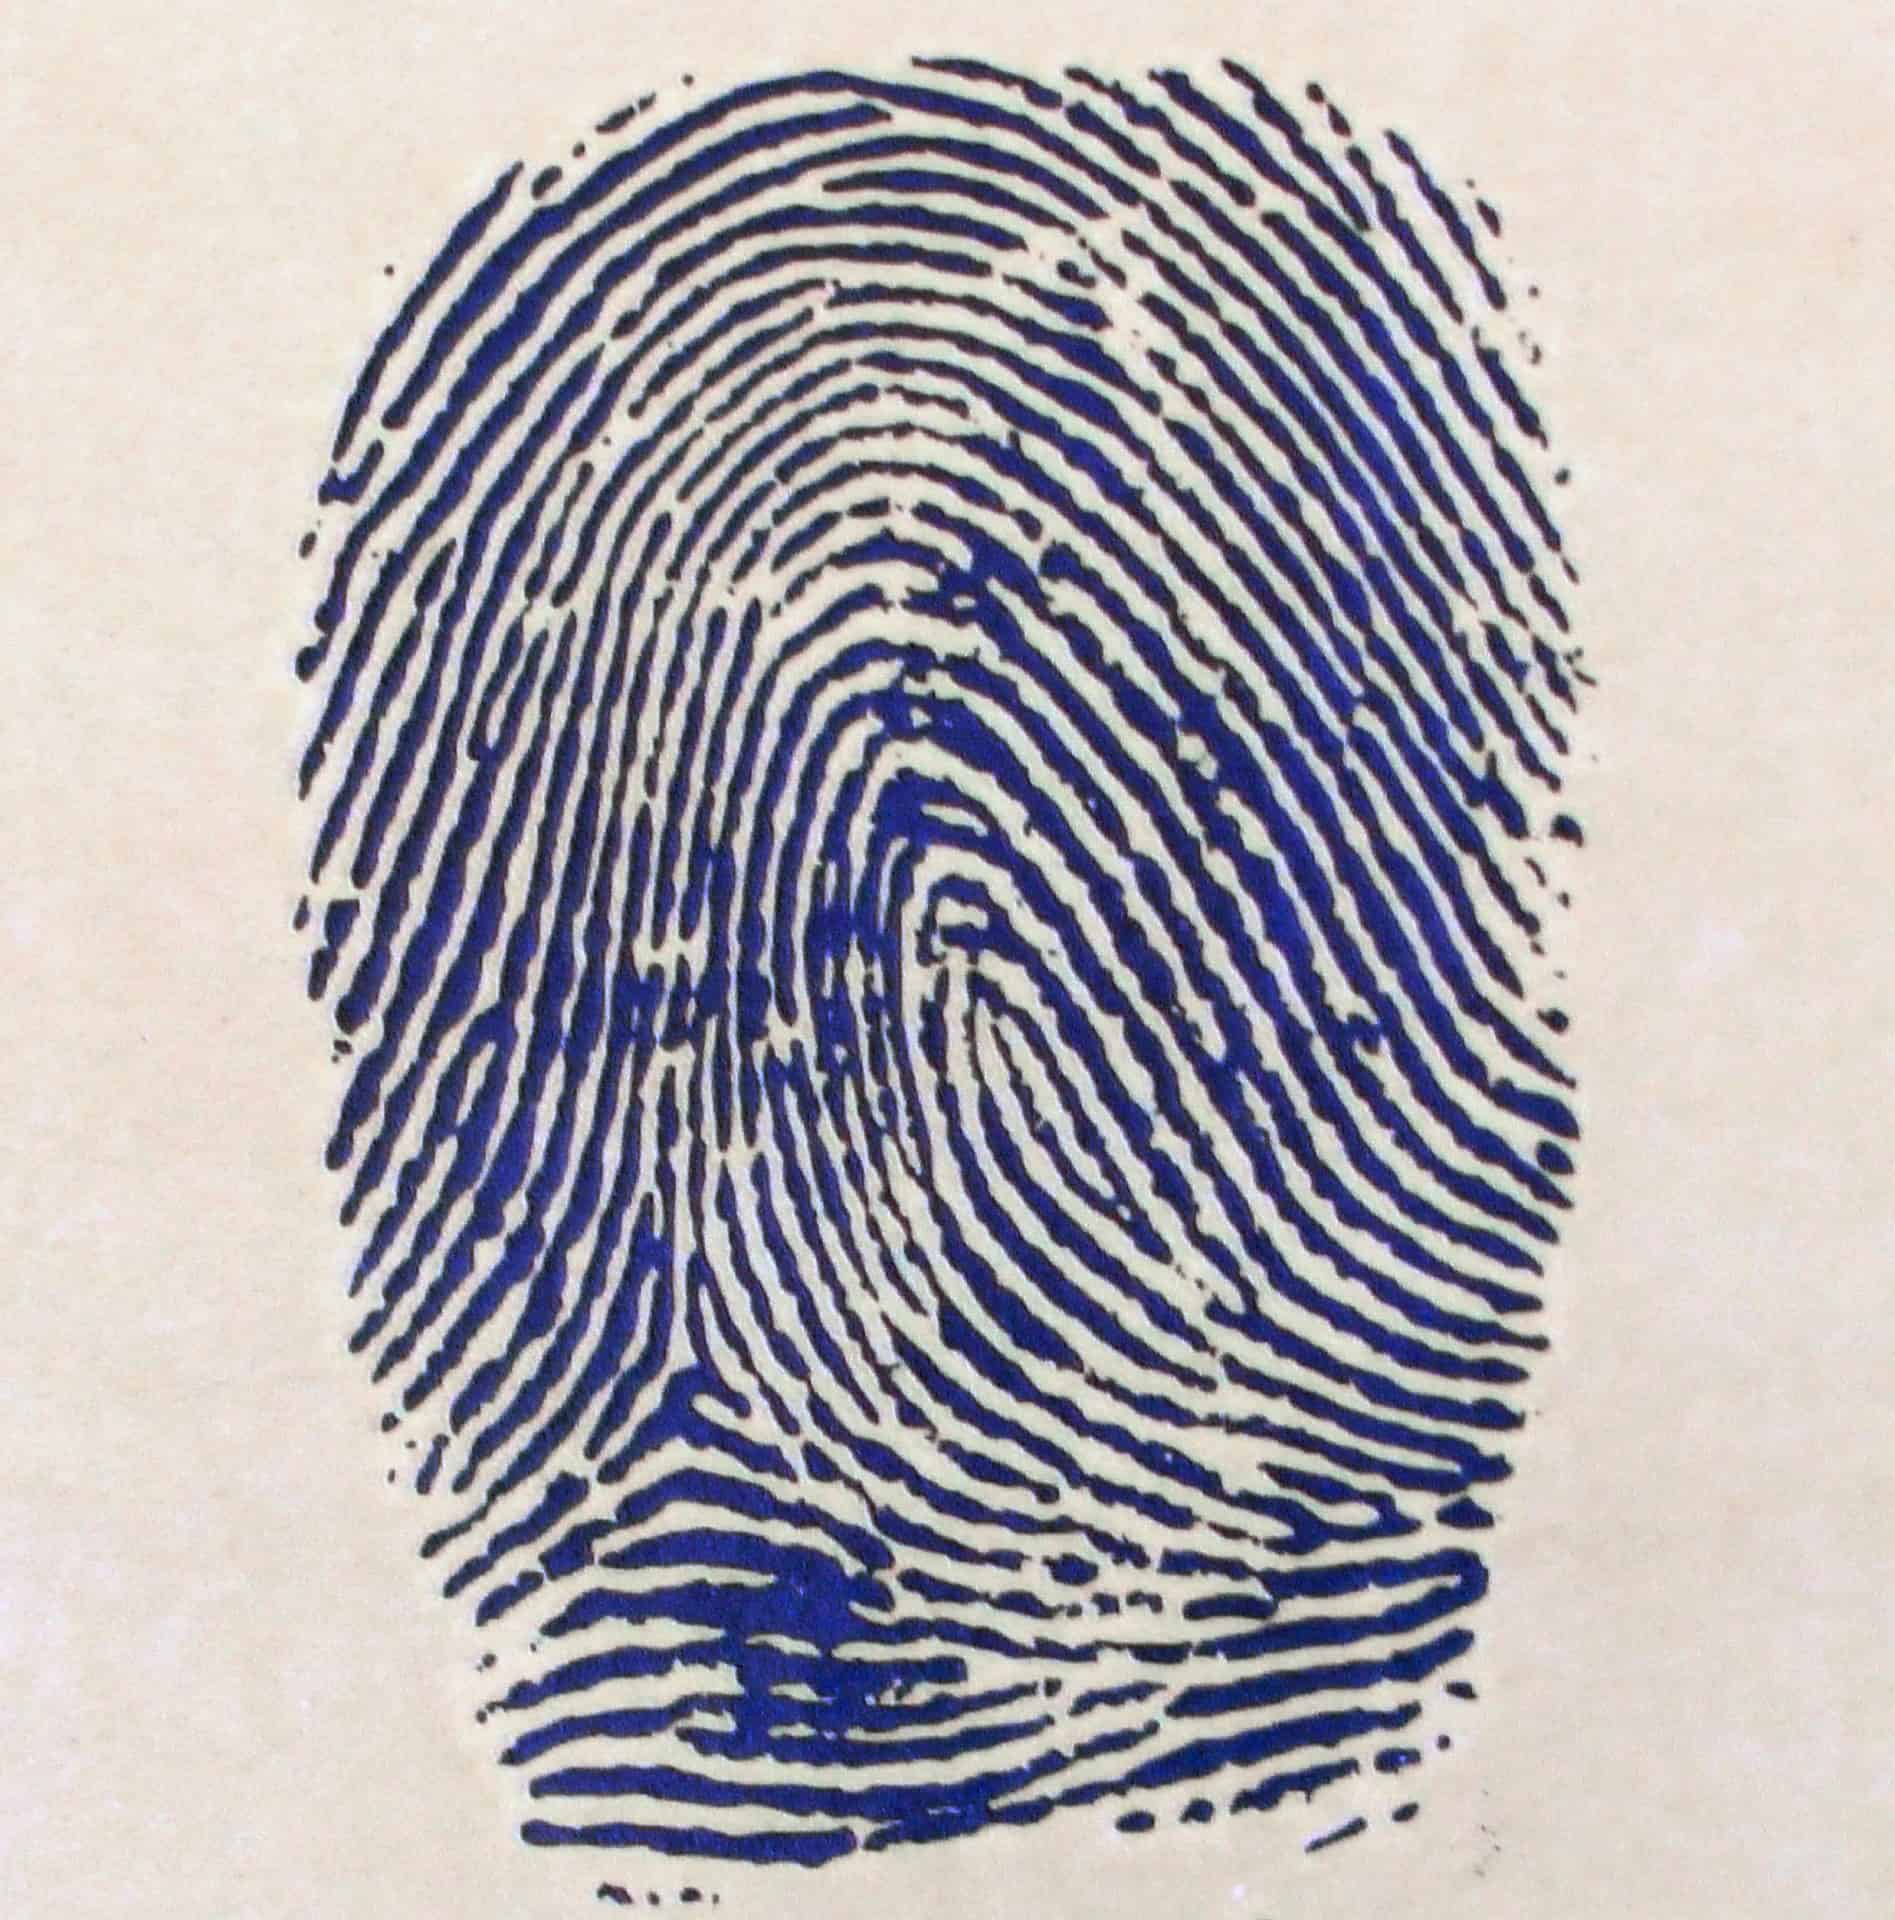 Switzerland-based Cornèrcard Partners with Gemalto and Visa to Launch Card Featuring Biometric Fingerprint Reader